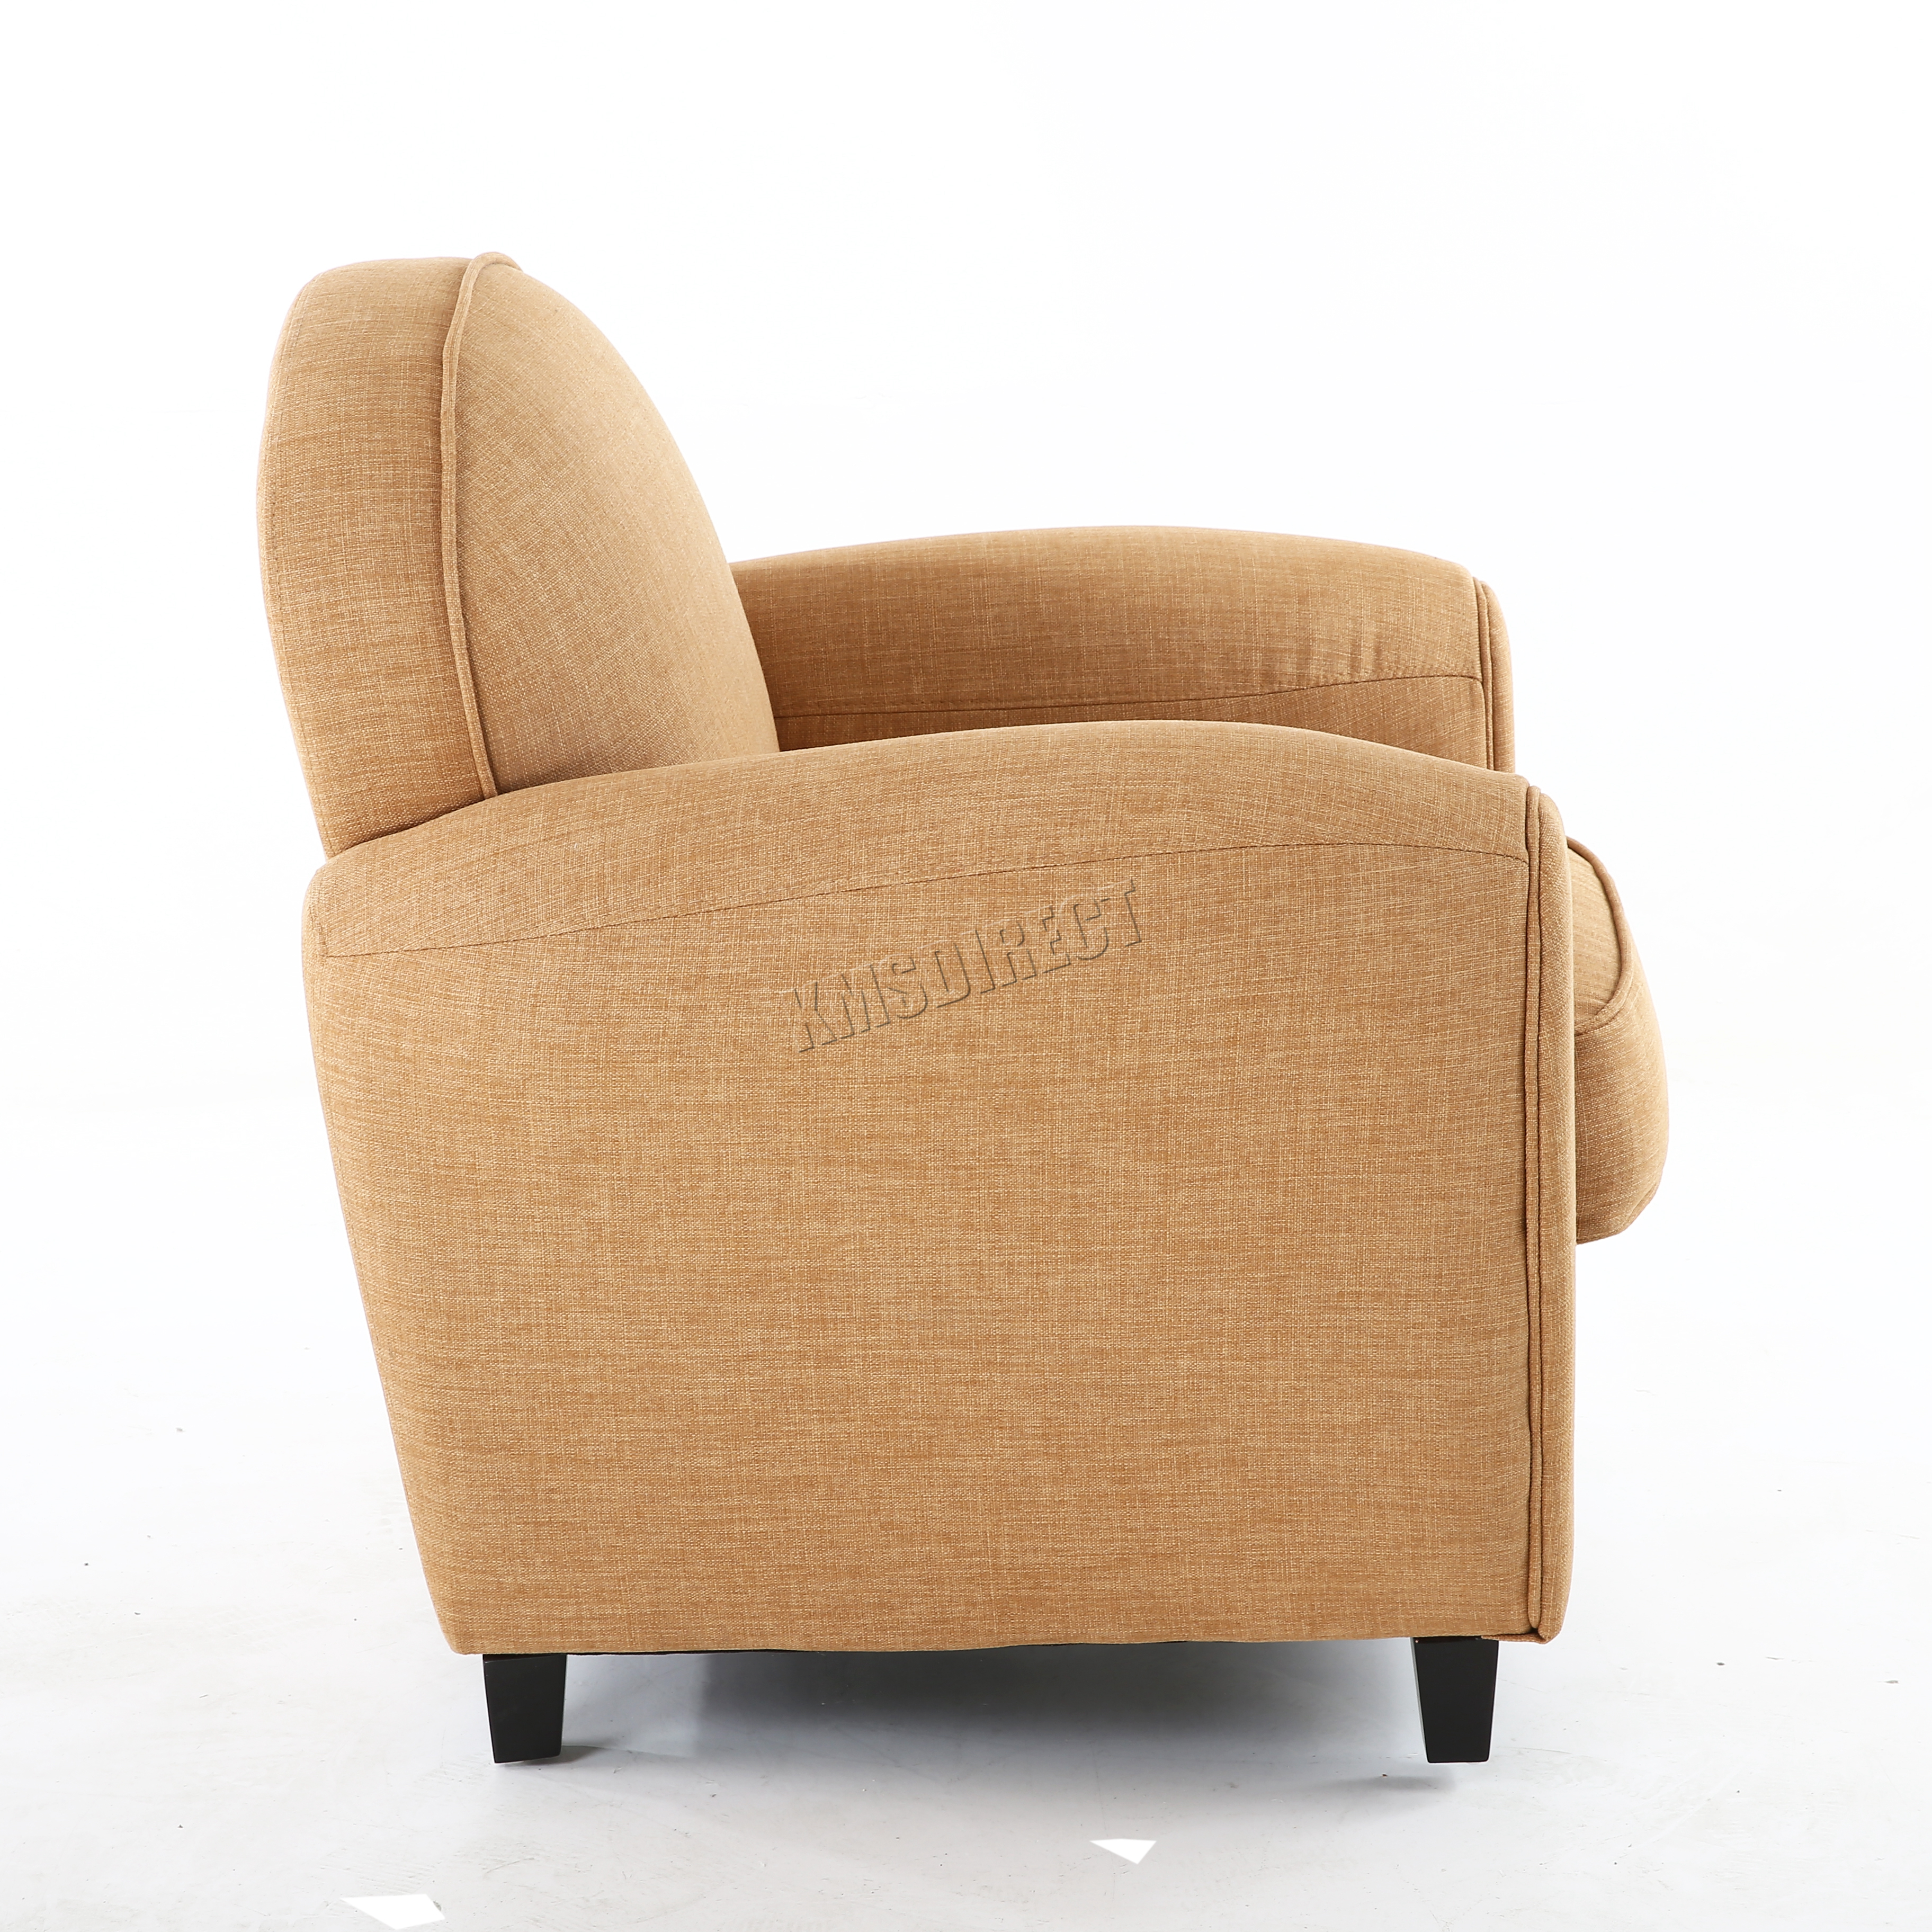 tub chair covers ebay stool for camping foxhunter linen fabric armchair 2094 sofa dining